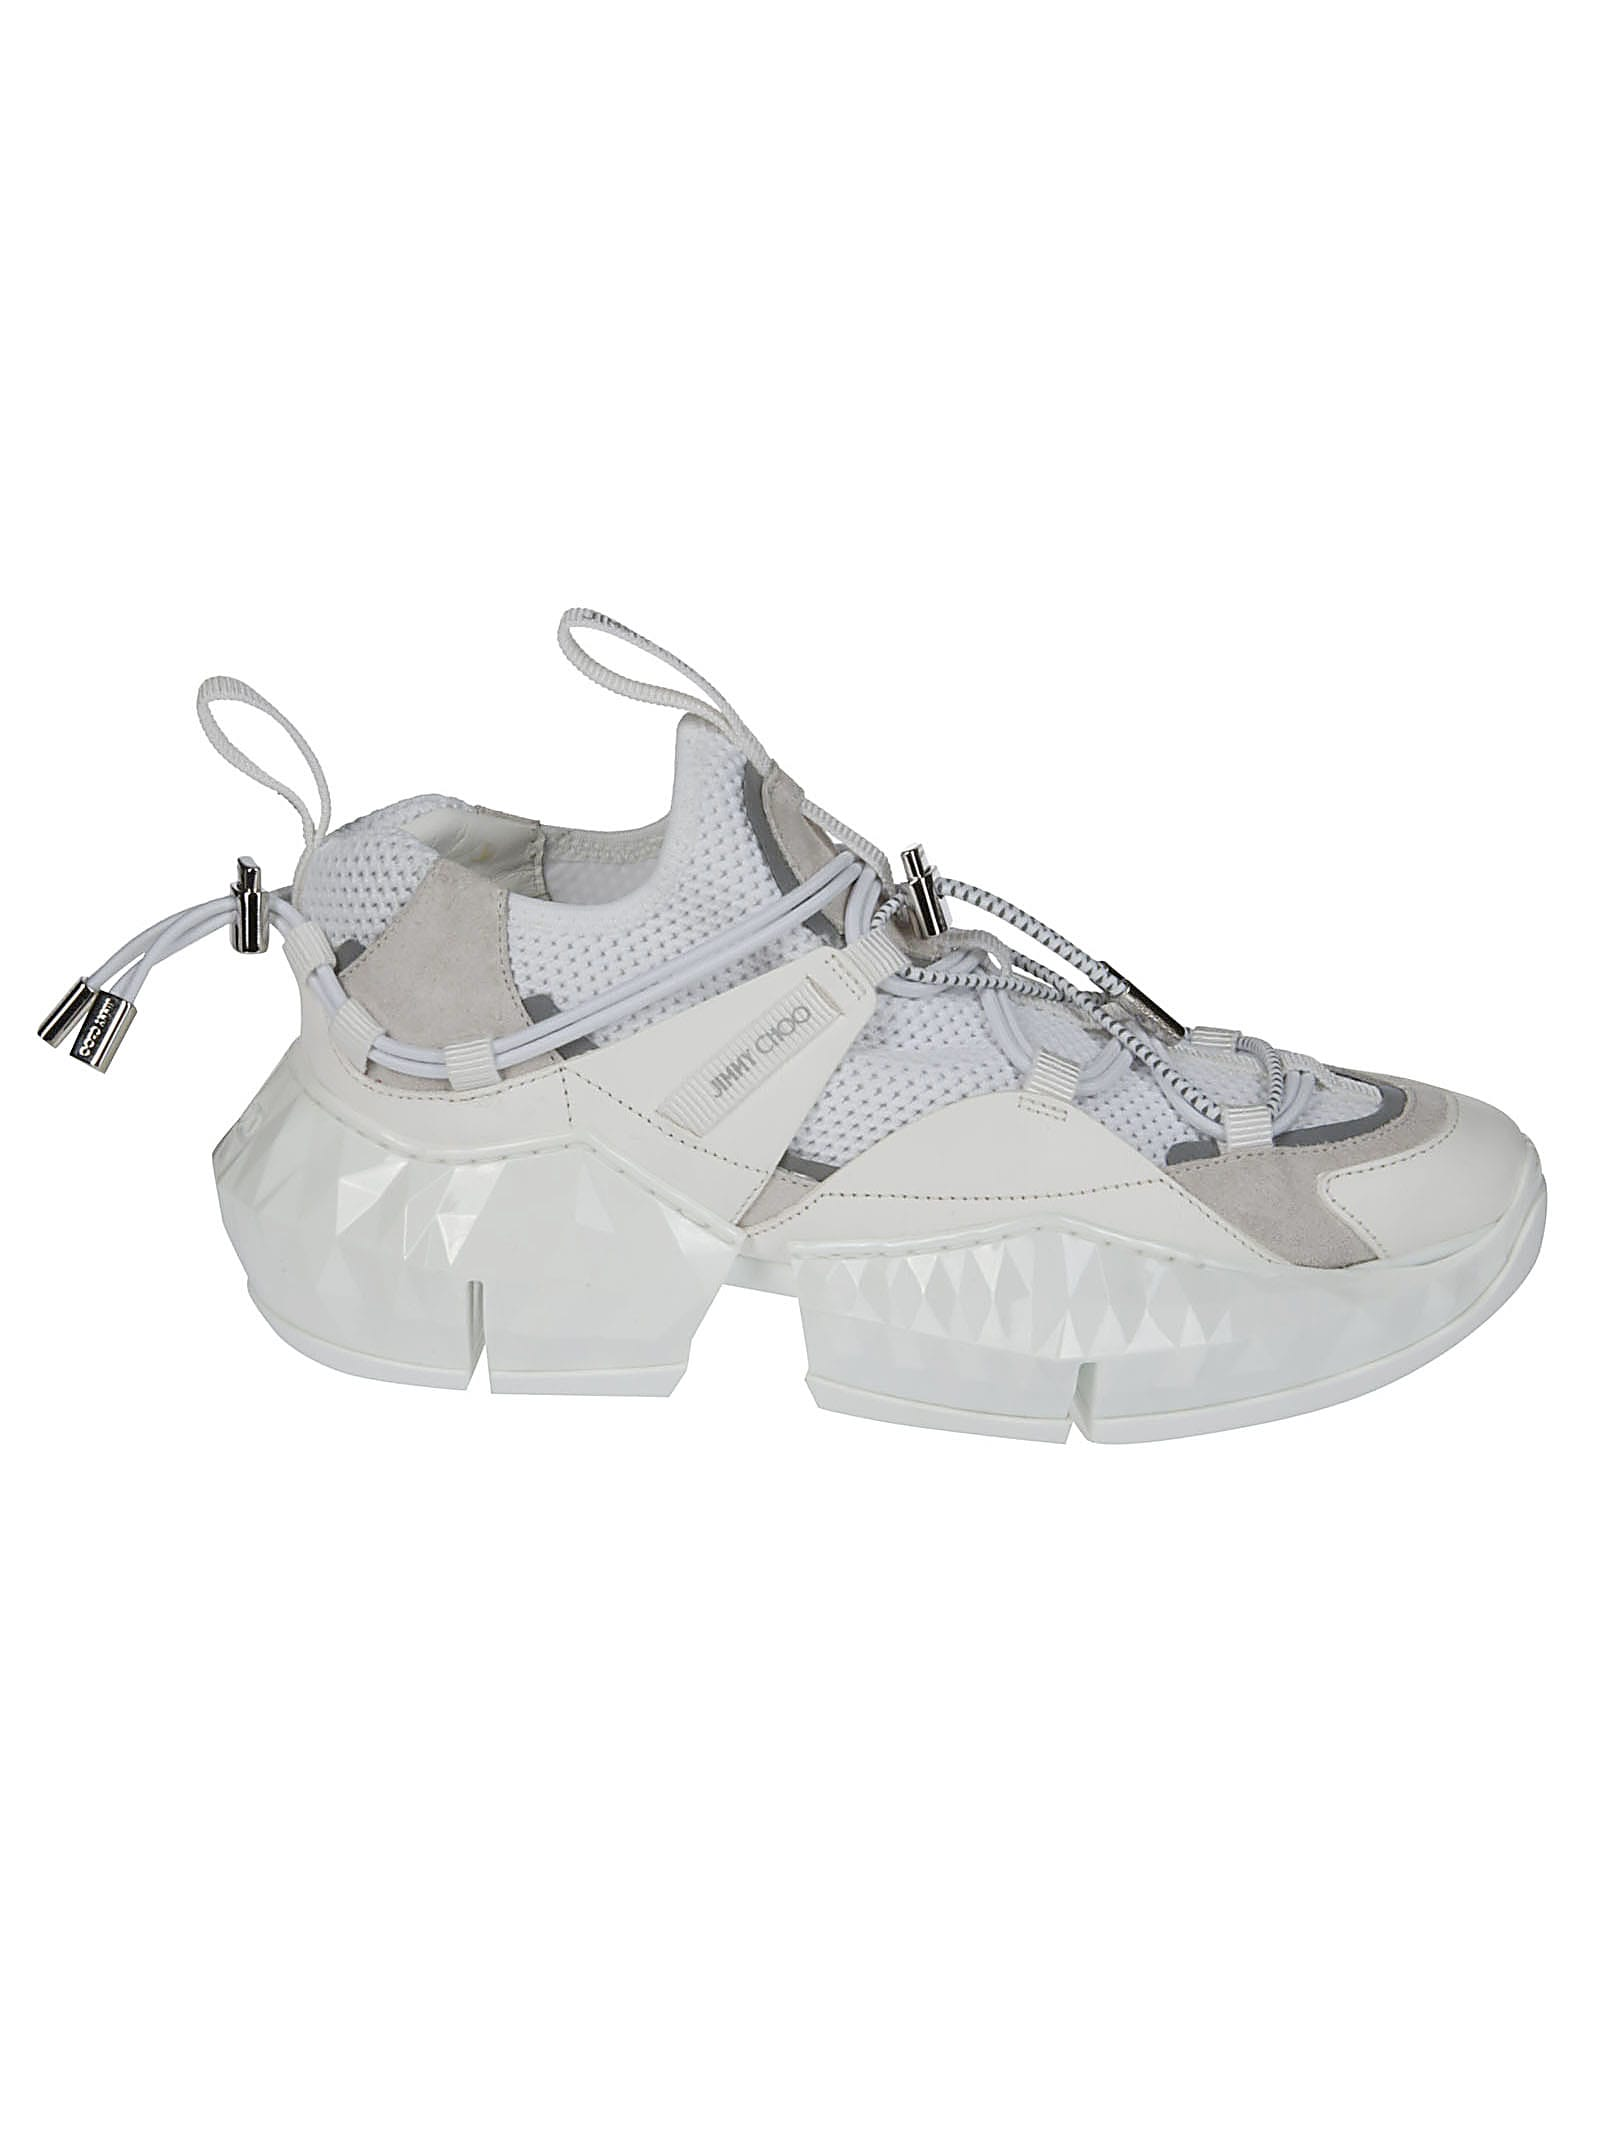 Jimmy Choo White Leather And Canvas Diamond Sneakers